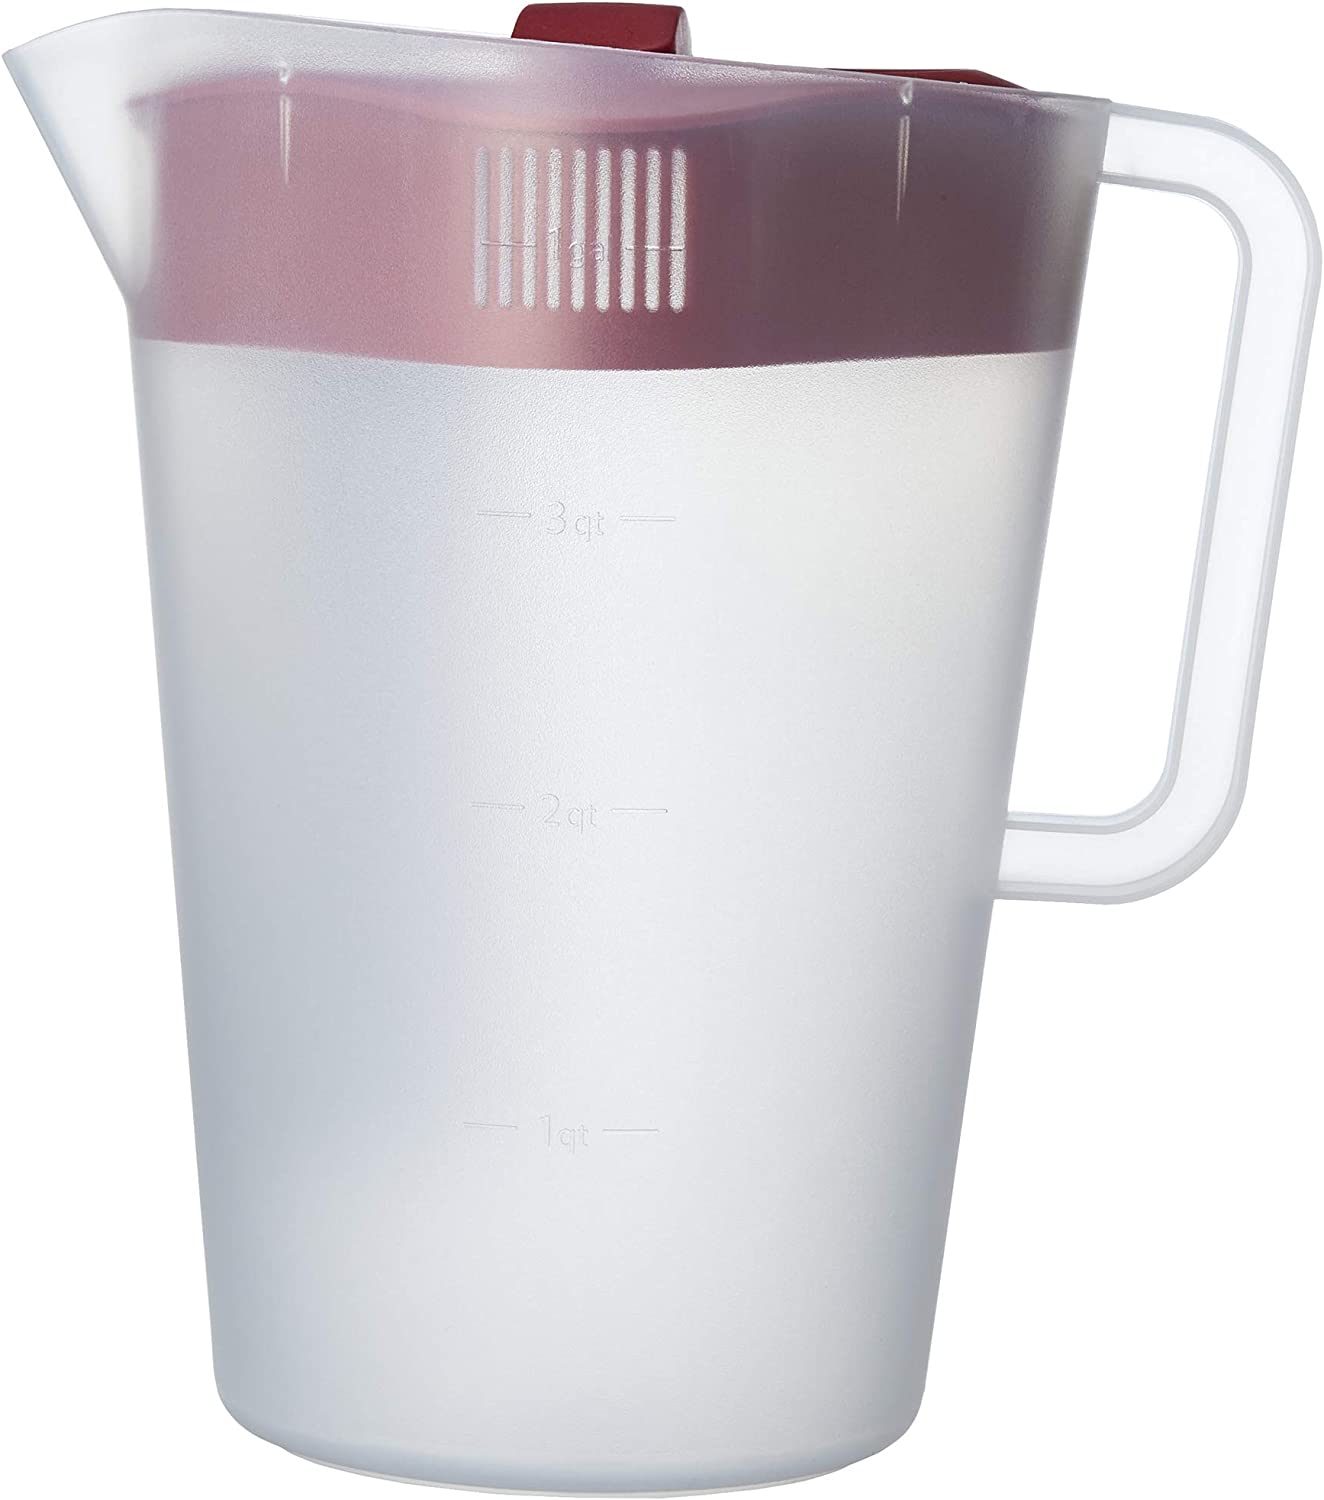 Good Cook 1 gallon plastic straining pitcher square lid with 3 strainers and close no spill, Dishwasher Safe, Clear and Red